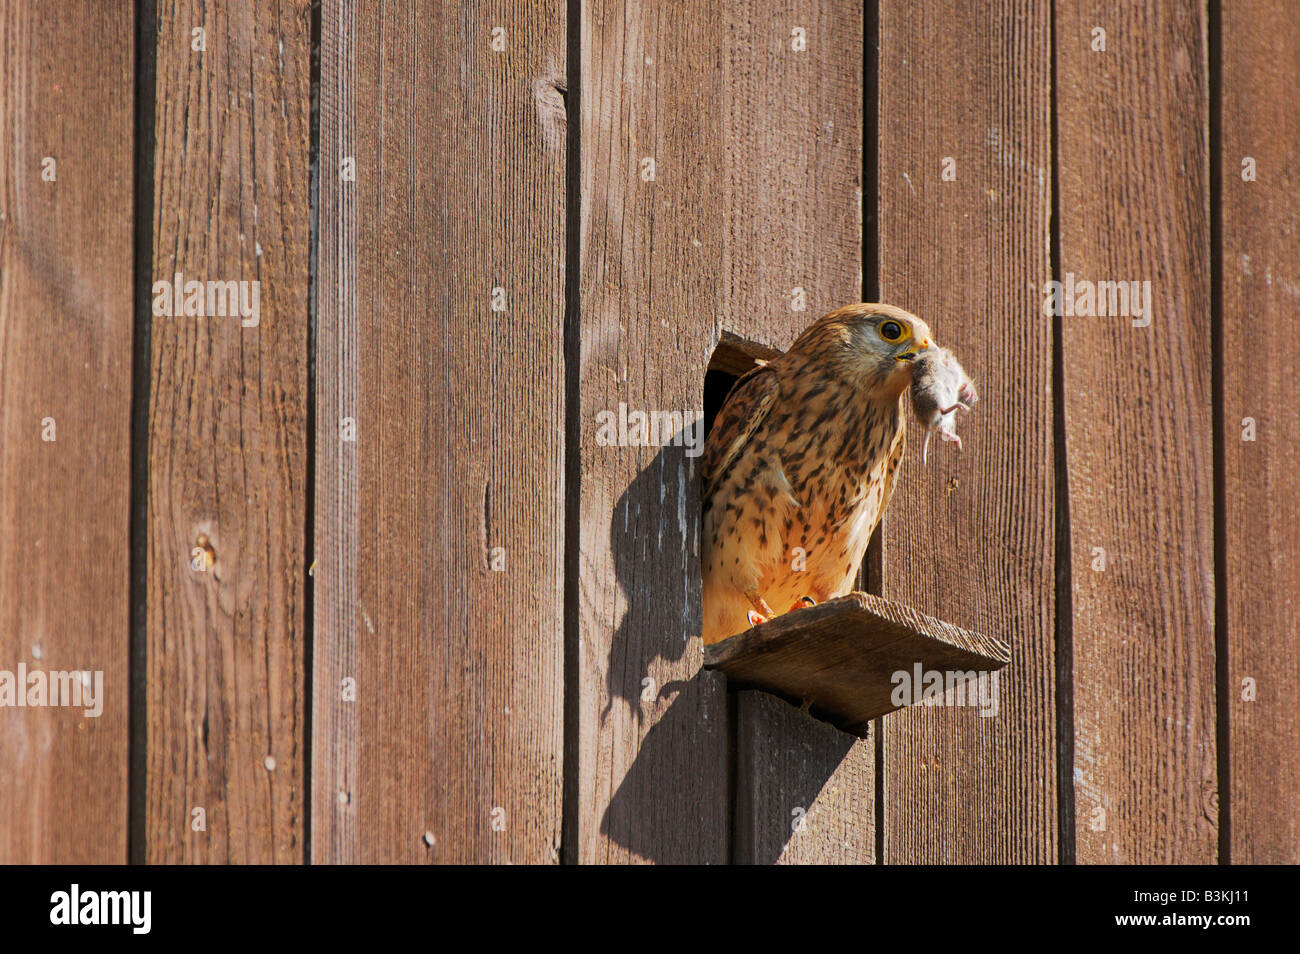 Common Kestrel Falco tinnunculus adult with mouse prey Switzerland - Stock Image